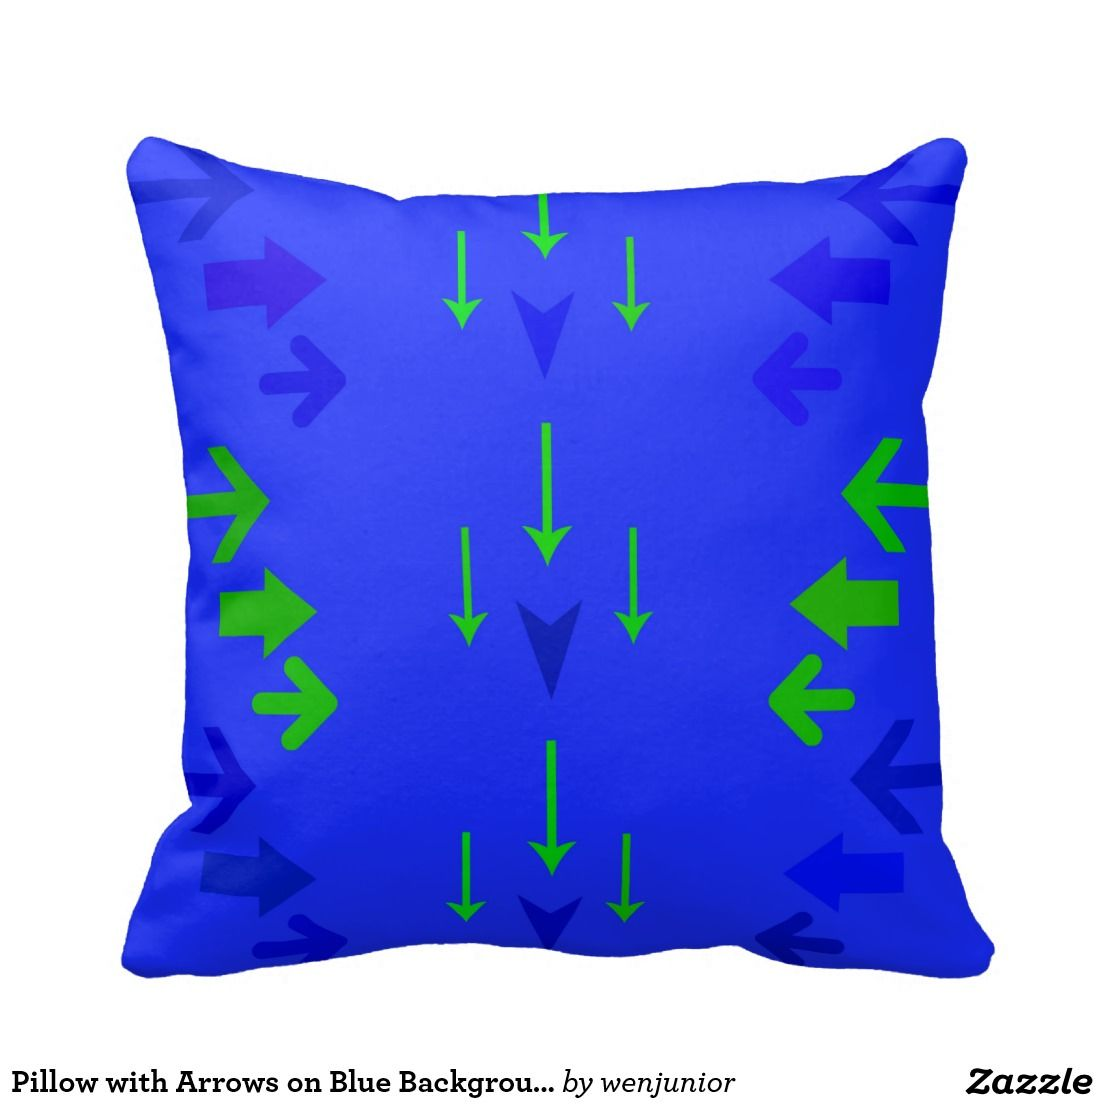 Pillow with Arrows on Blue Background